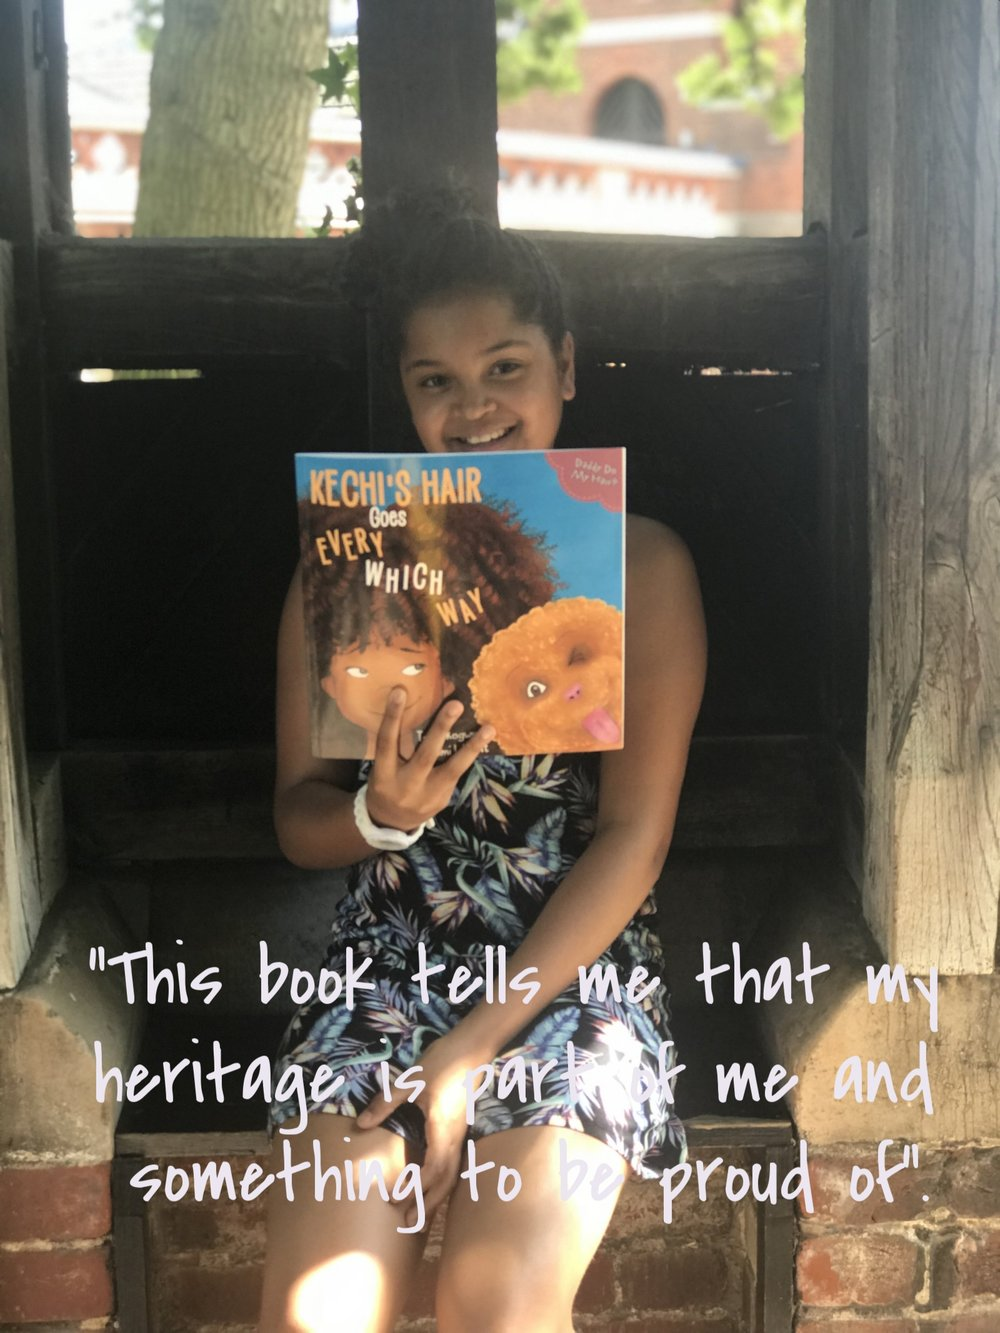 book review, well read black girl, black girl magic, black British, Meghan markle, royal wedding, style me Sunday, sharemadean Reid, motherhood, insta mum, make motherhood diverse, motherhood reconstructed, black lives matter, representation matters, influence, book nerd, black nerd, black joy